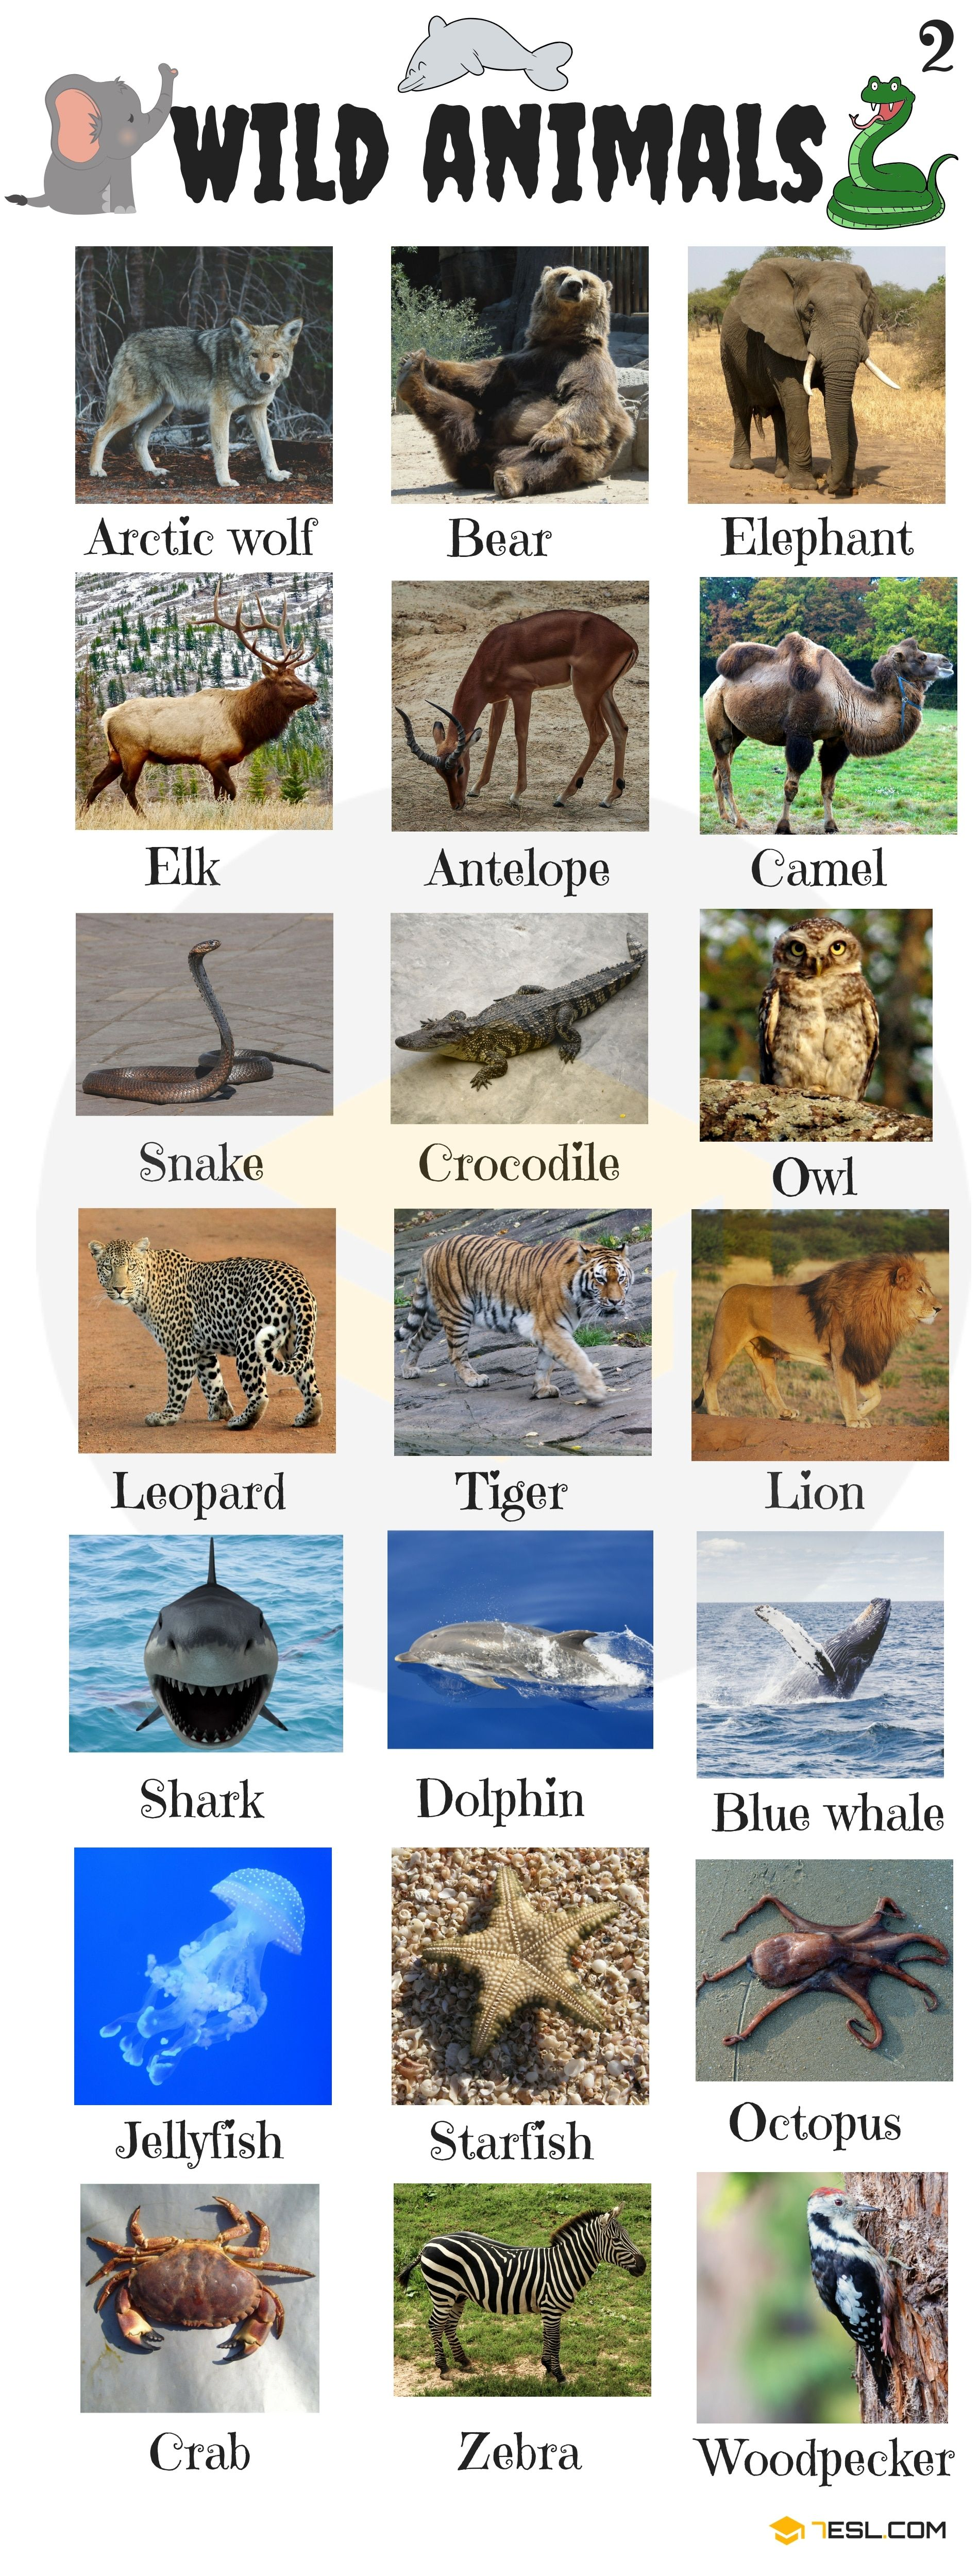 Animal Names Types Of Animals With List Pictures 7 E S L Animals Name In English Wild Animals List Animals Wild